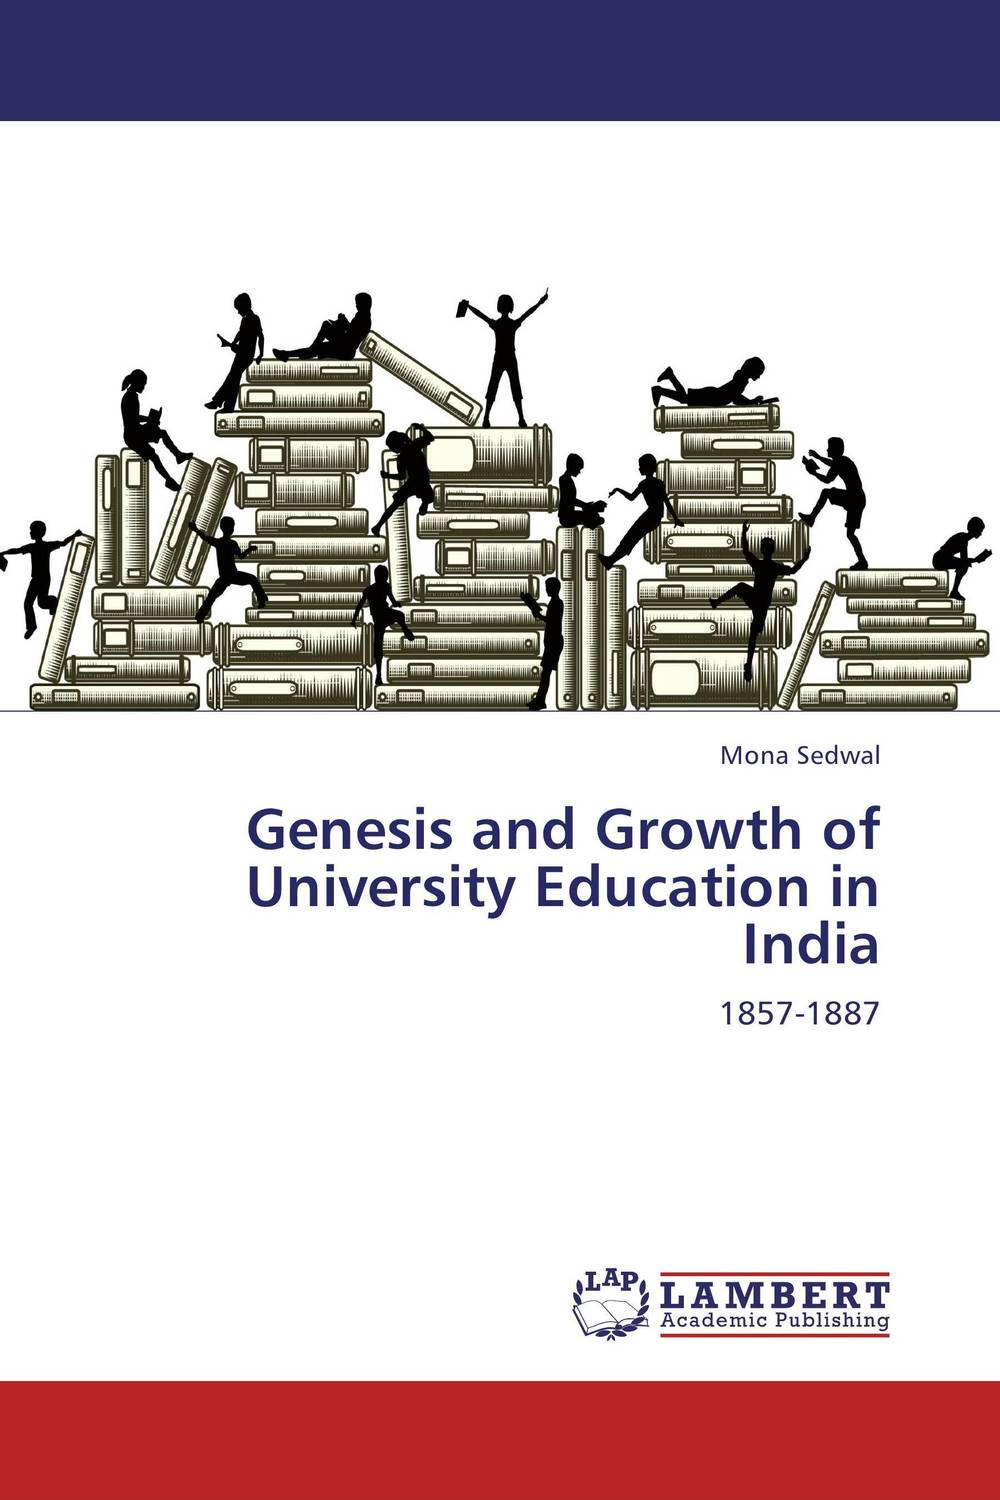 Genesis and Growth of University Education in India peace education at the national university of rwanda